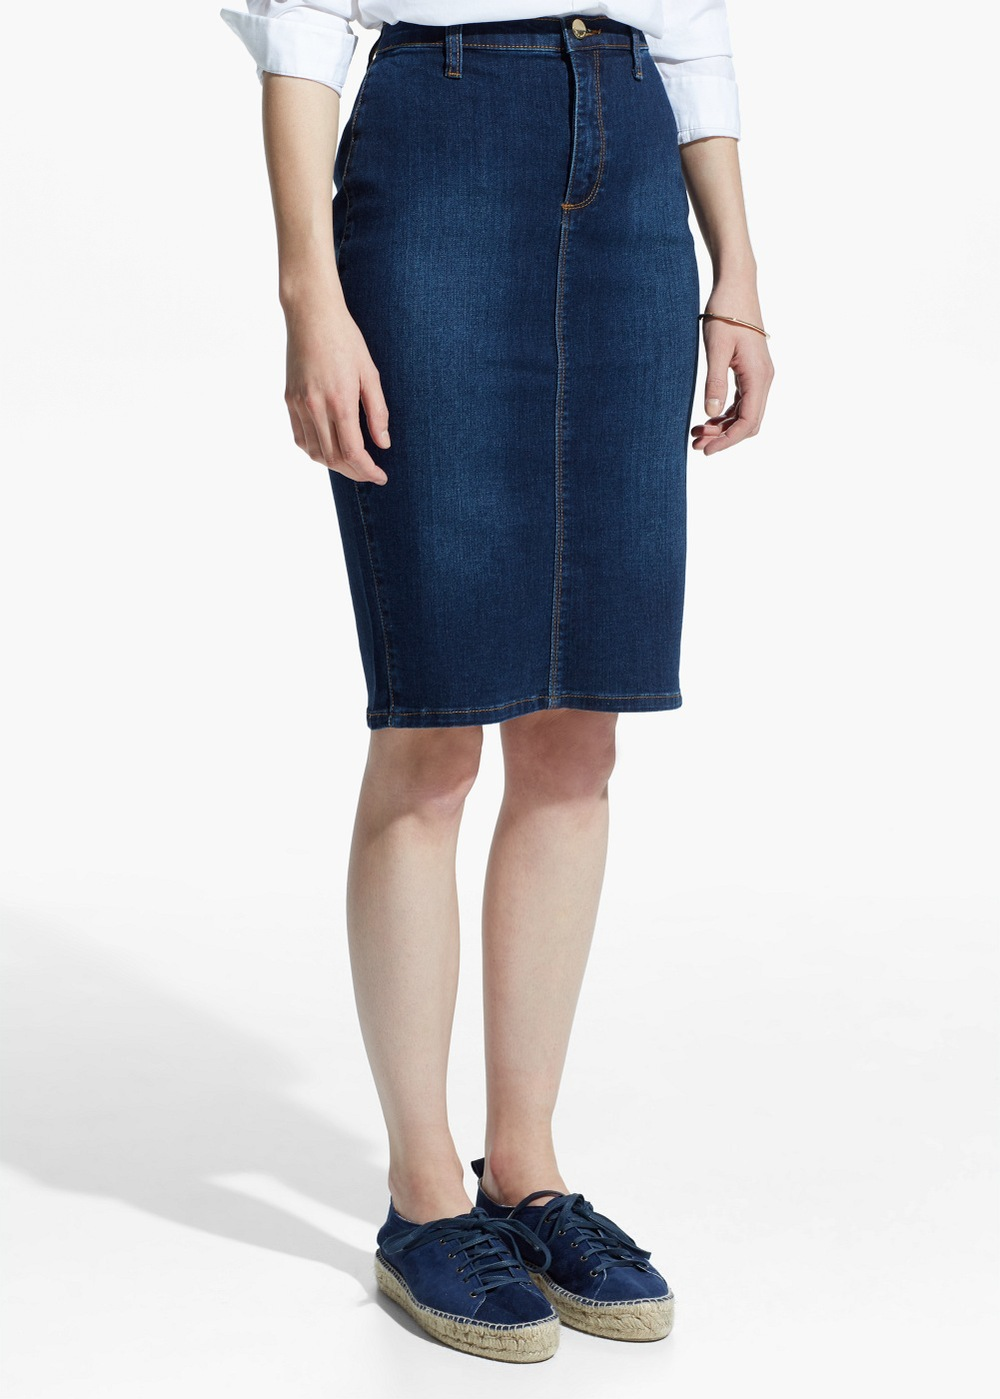 DENIM SKIRT — DRESS LIKE A MUM